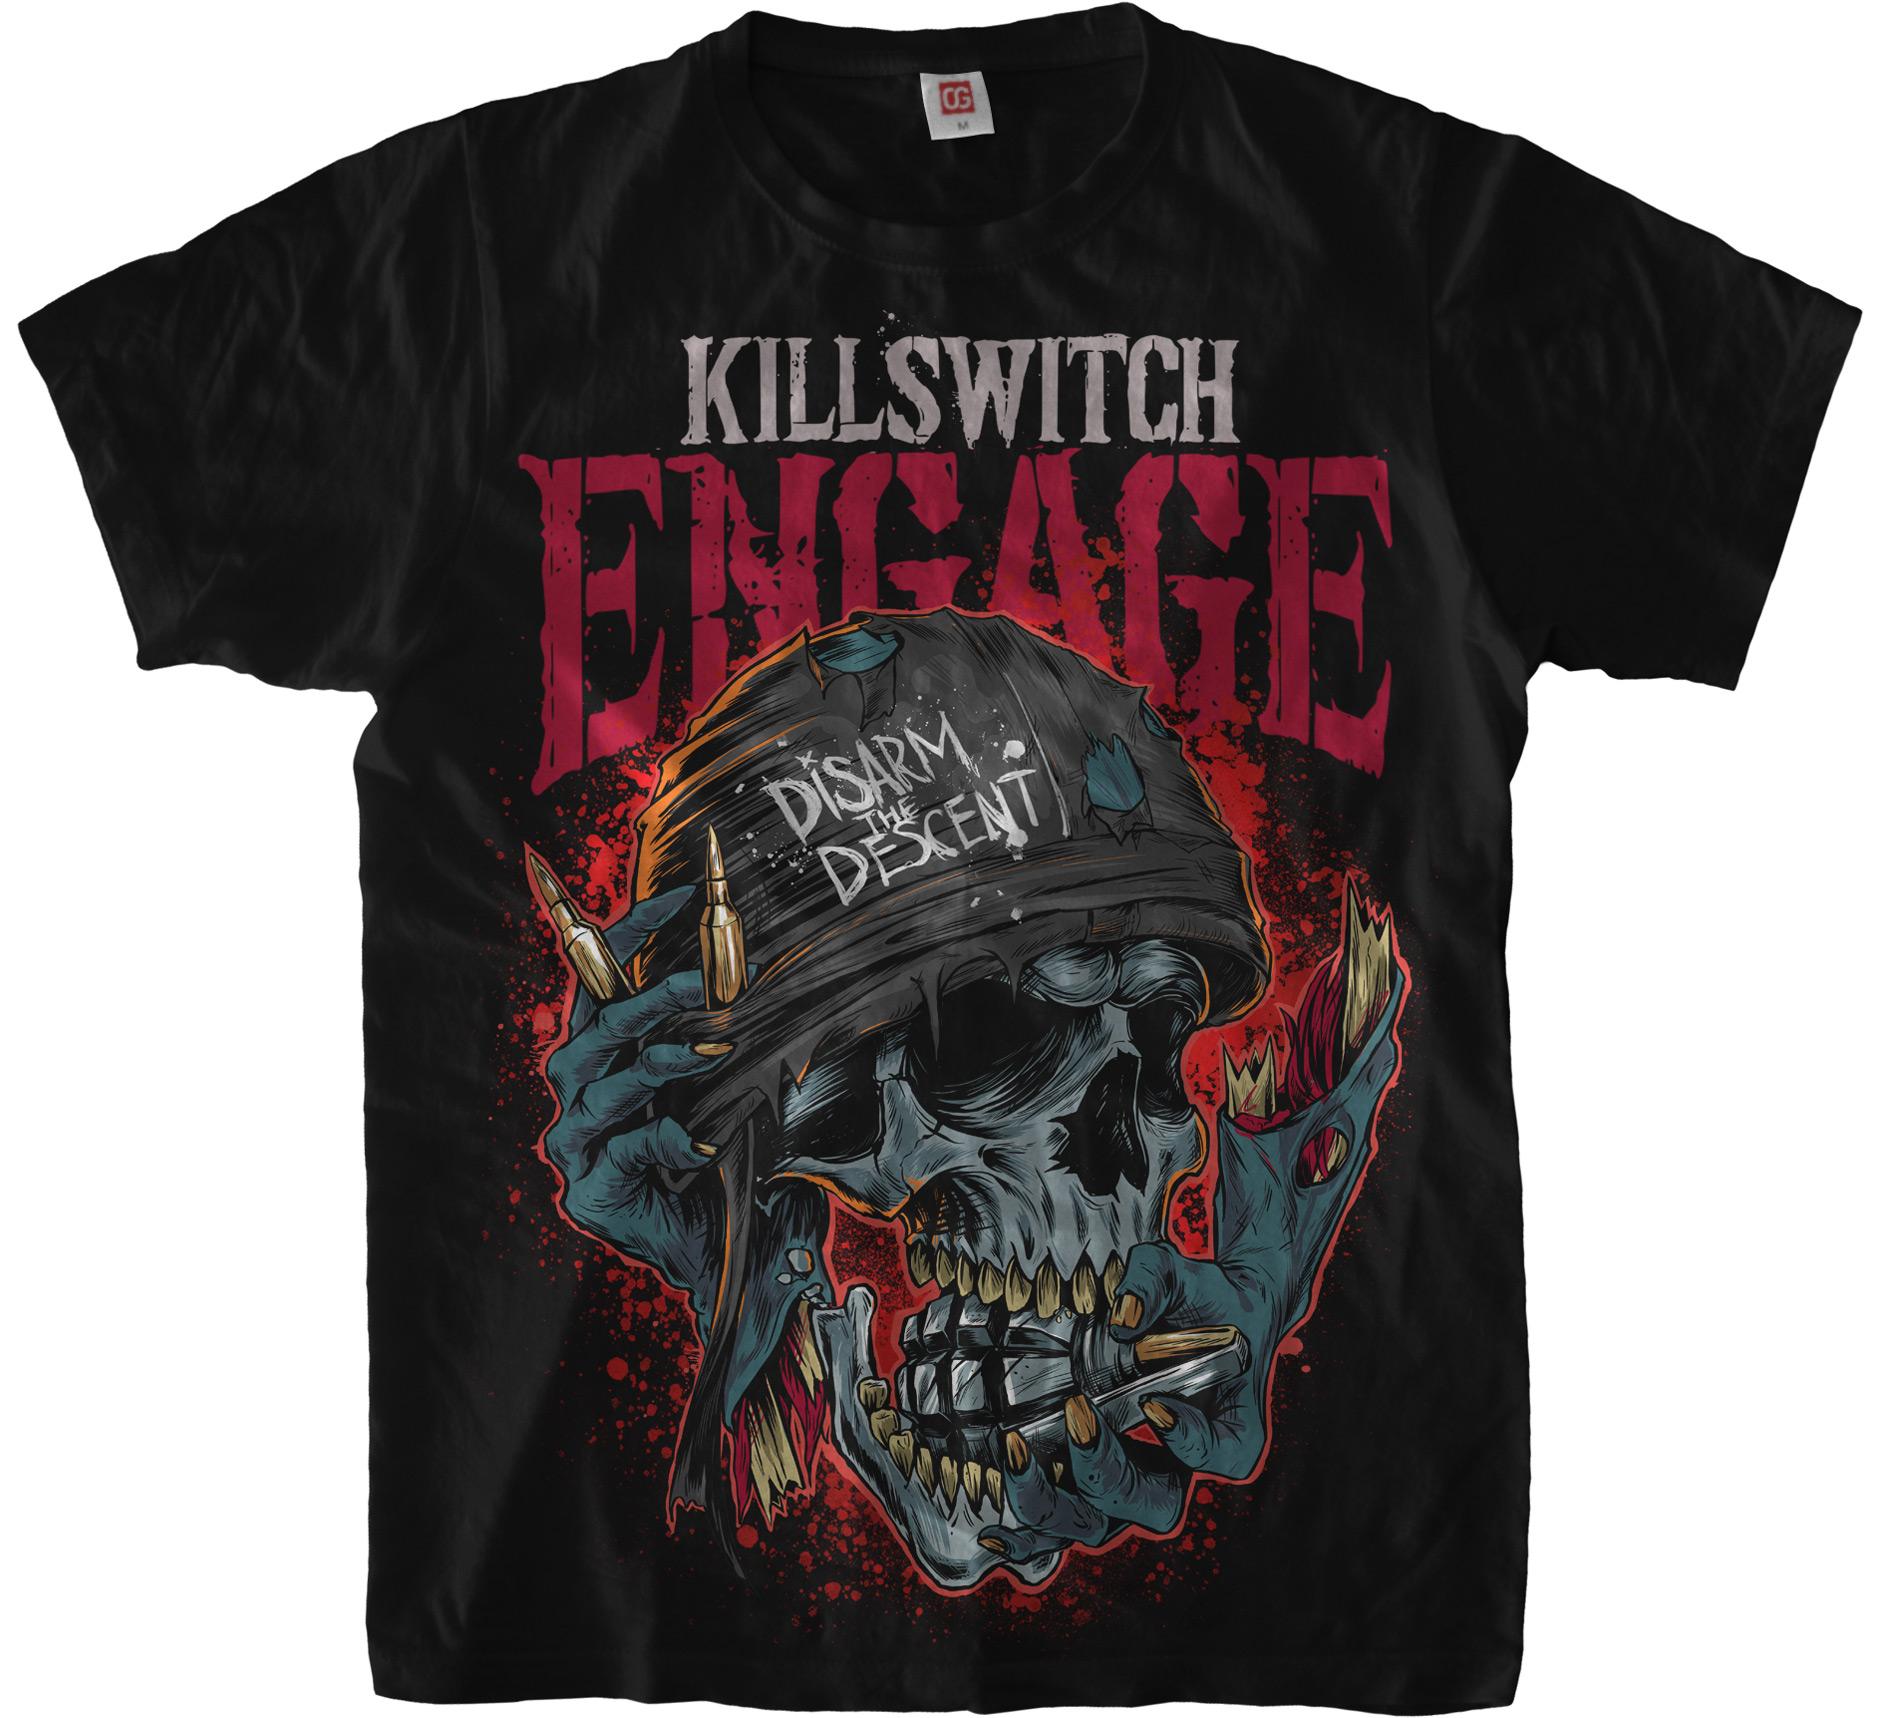 «Disarm the Descent» T-Shirt for Killswitch Engage